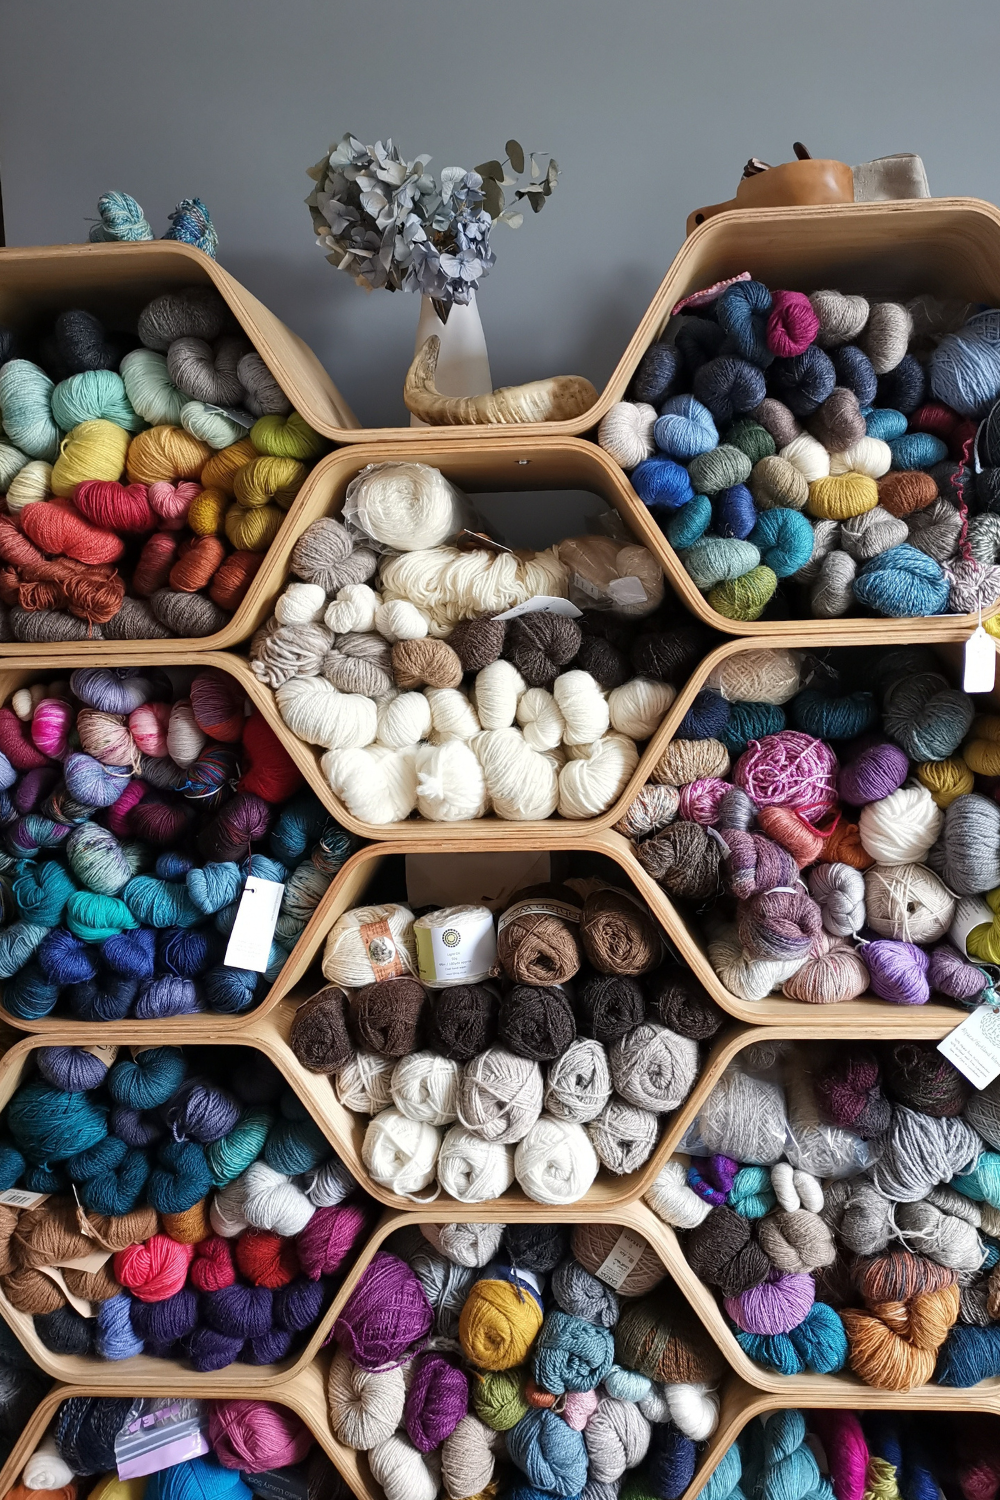 a close up of my honeycomb shelves that are now filled with my yarn stash.  Lots of colourful skeins and lots of batural sheep colours.